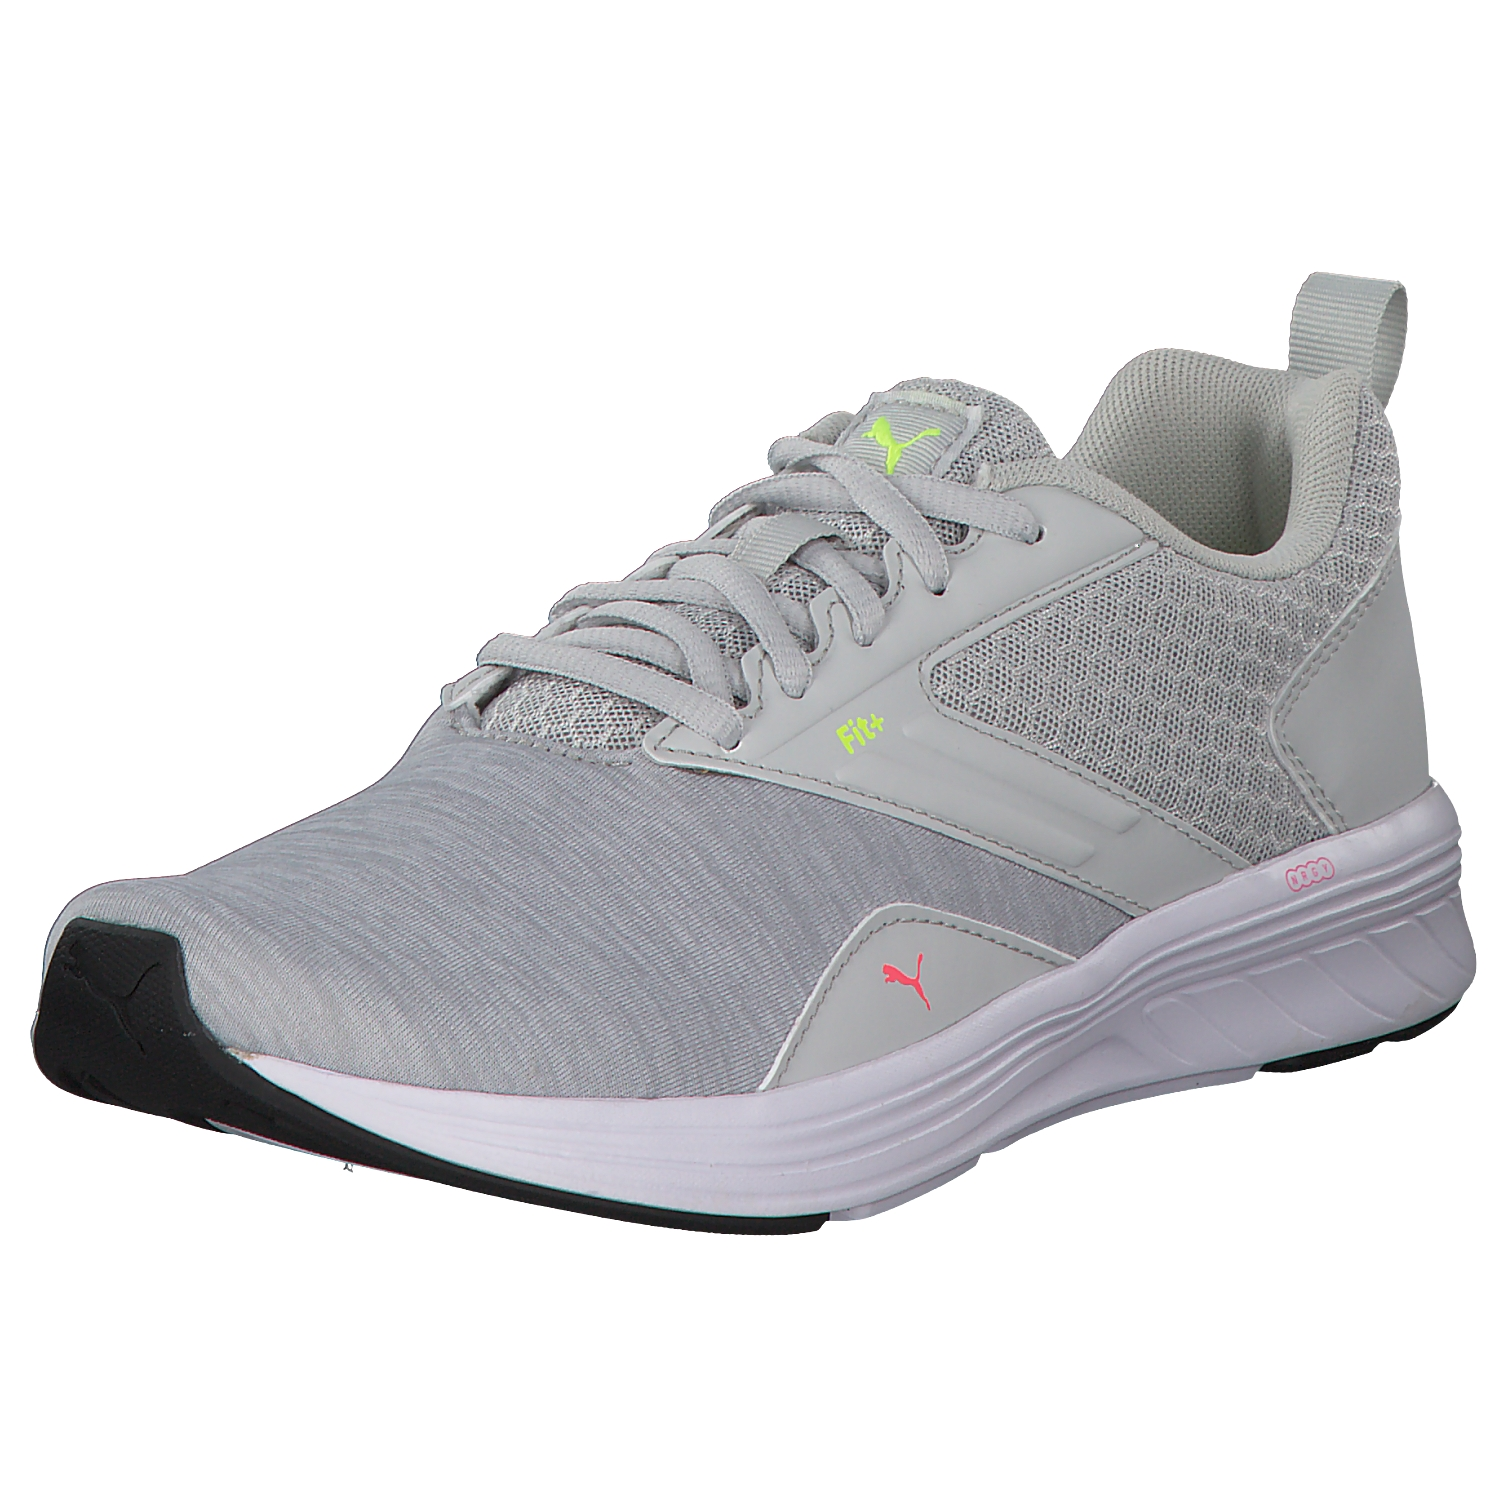 Details about Puma Nrgy Comet Men Sneakers Summer Shoes 190556 029 Steel Grey New